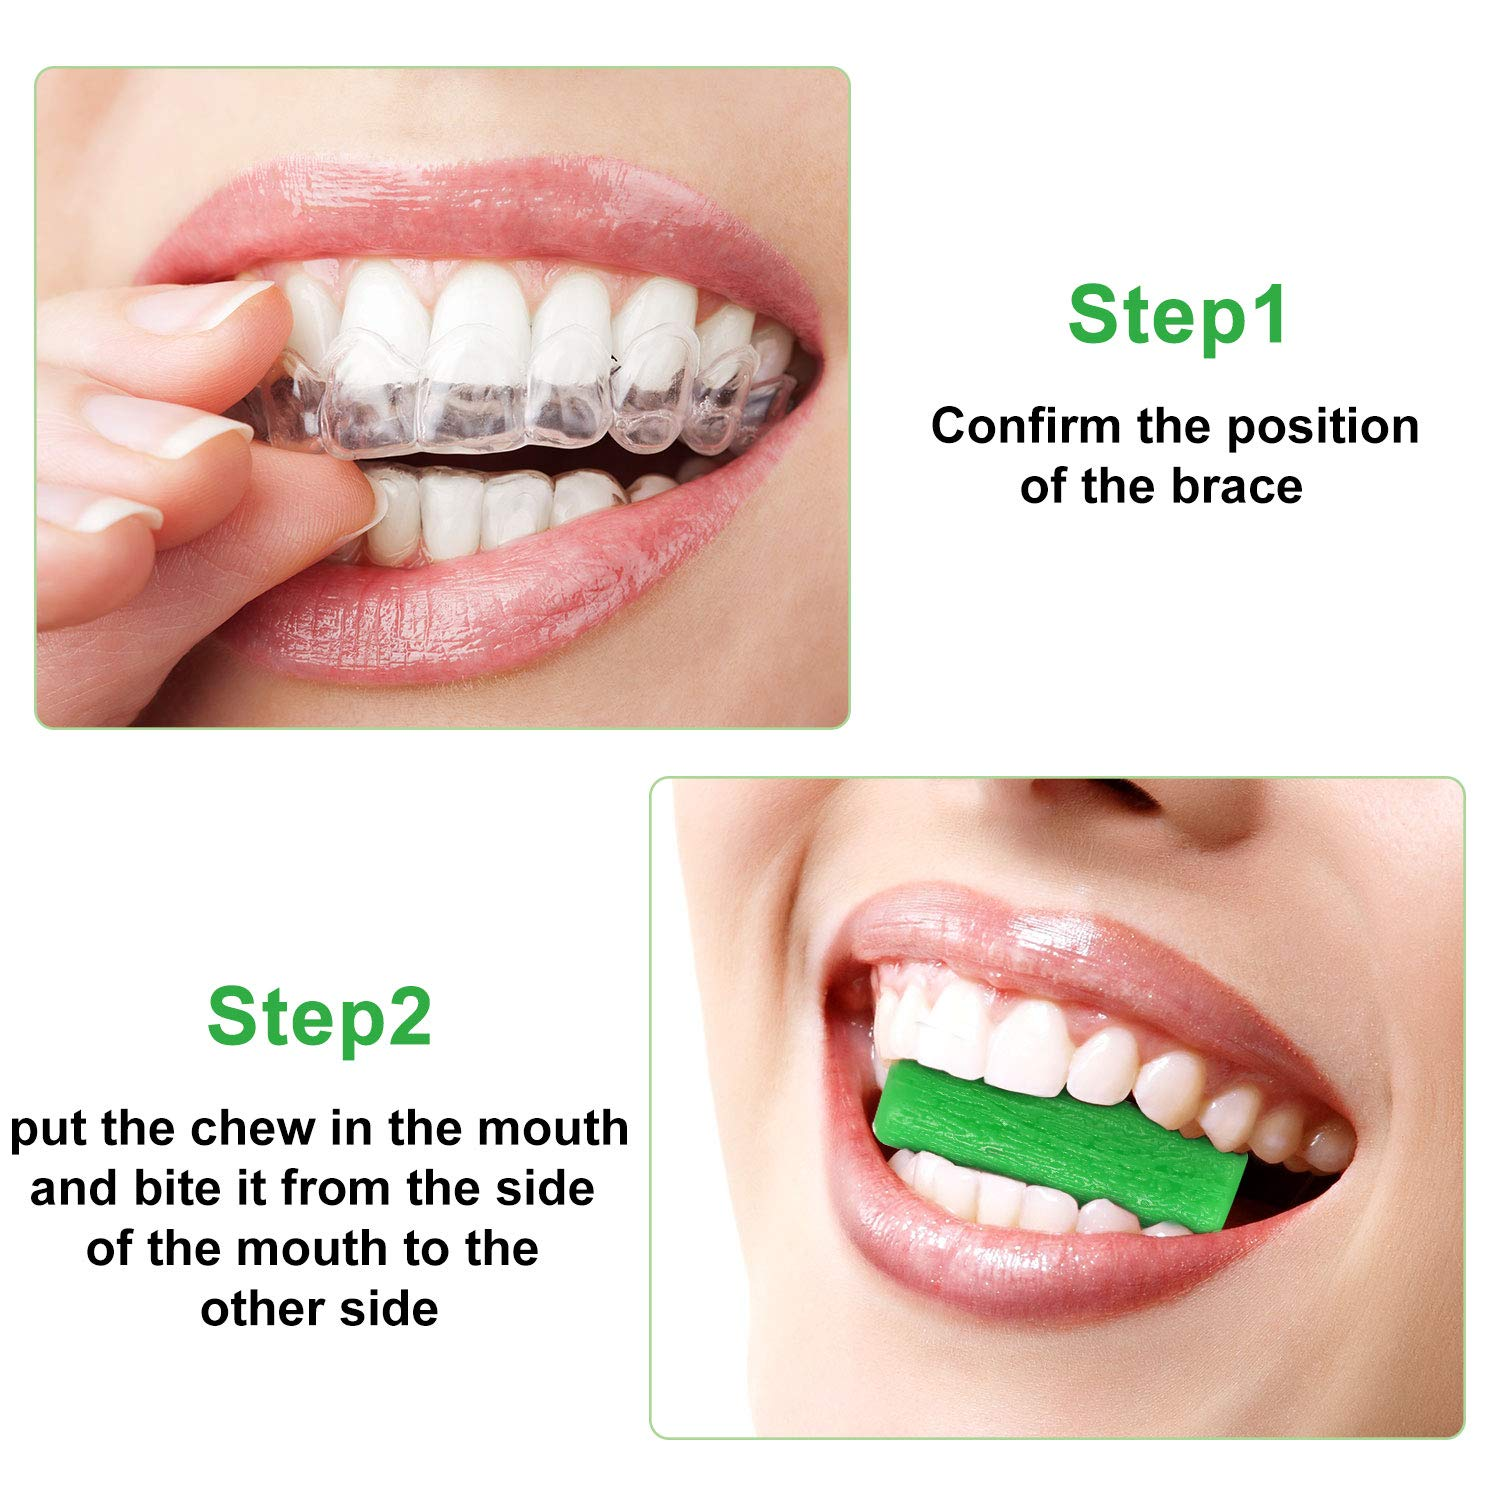 10 Pieces Aligner Chewies for Aligner Chompers Aligner Trays Seater Chewies : Beauty